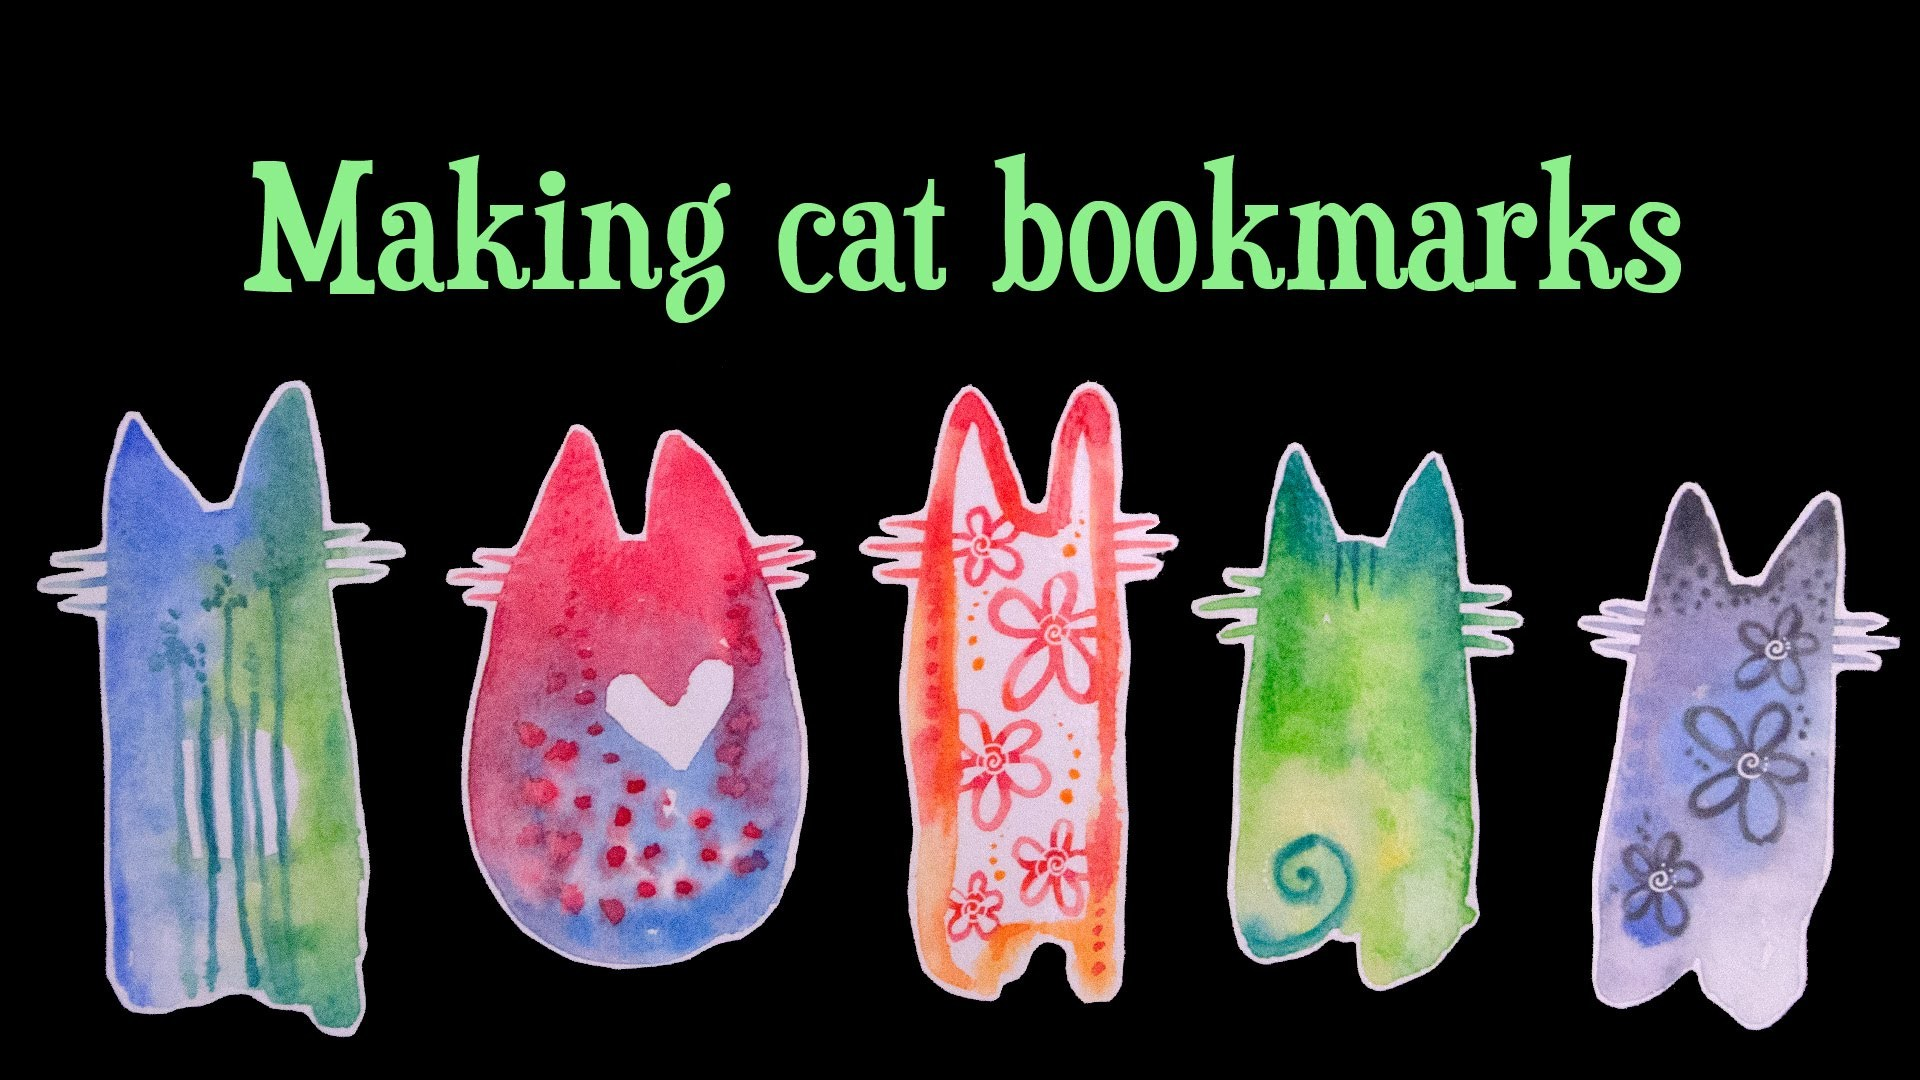 TUTORIAL: Laminated Cat Bookmarks